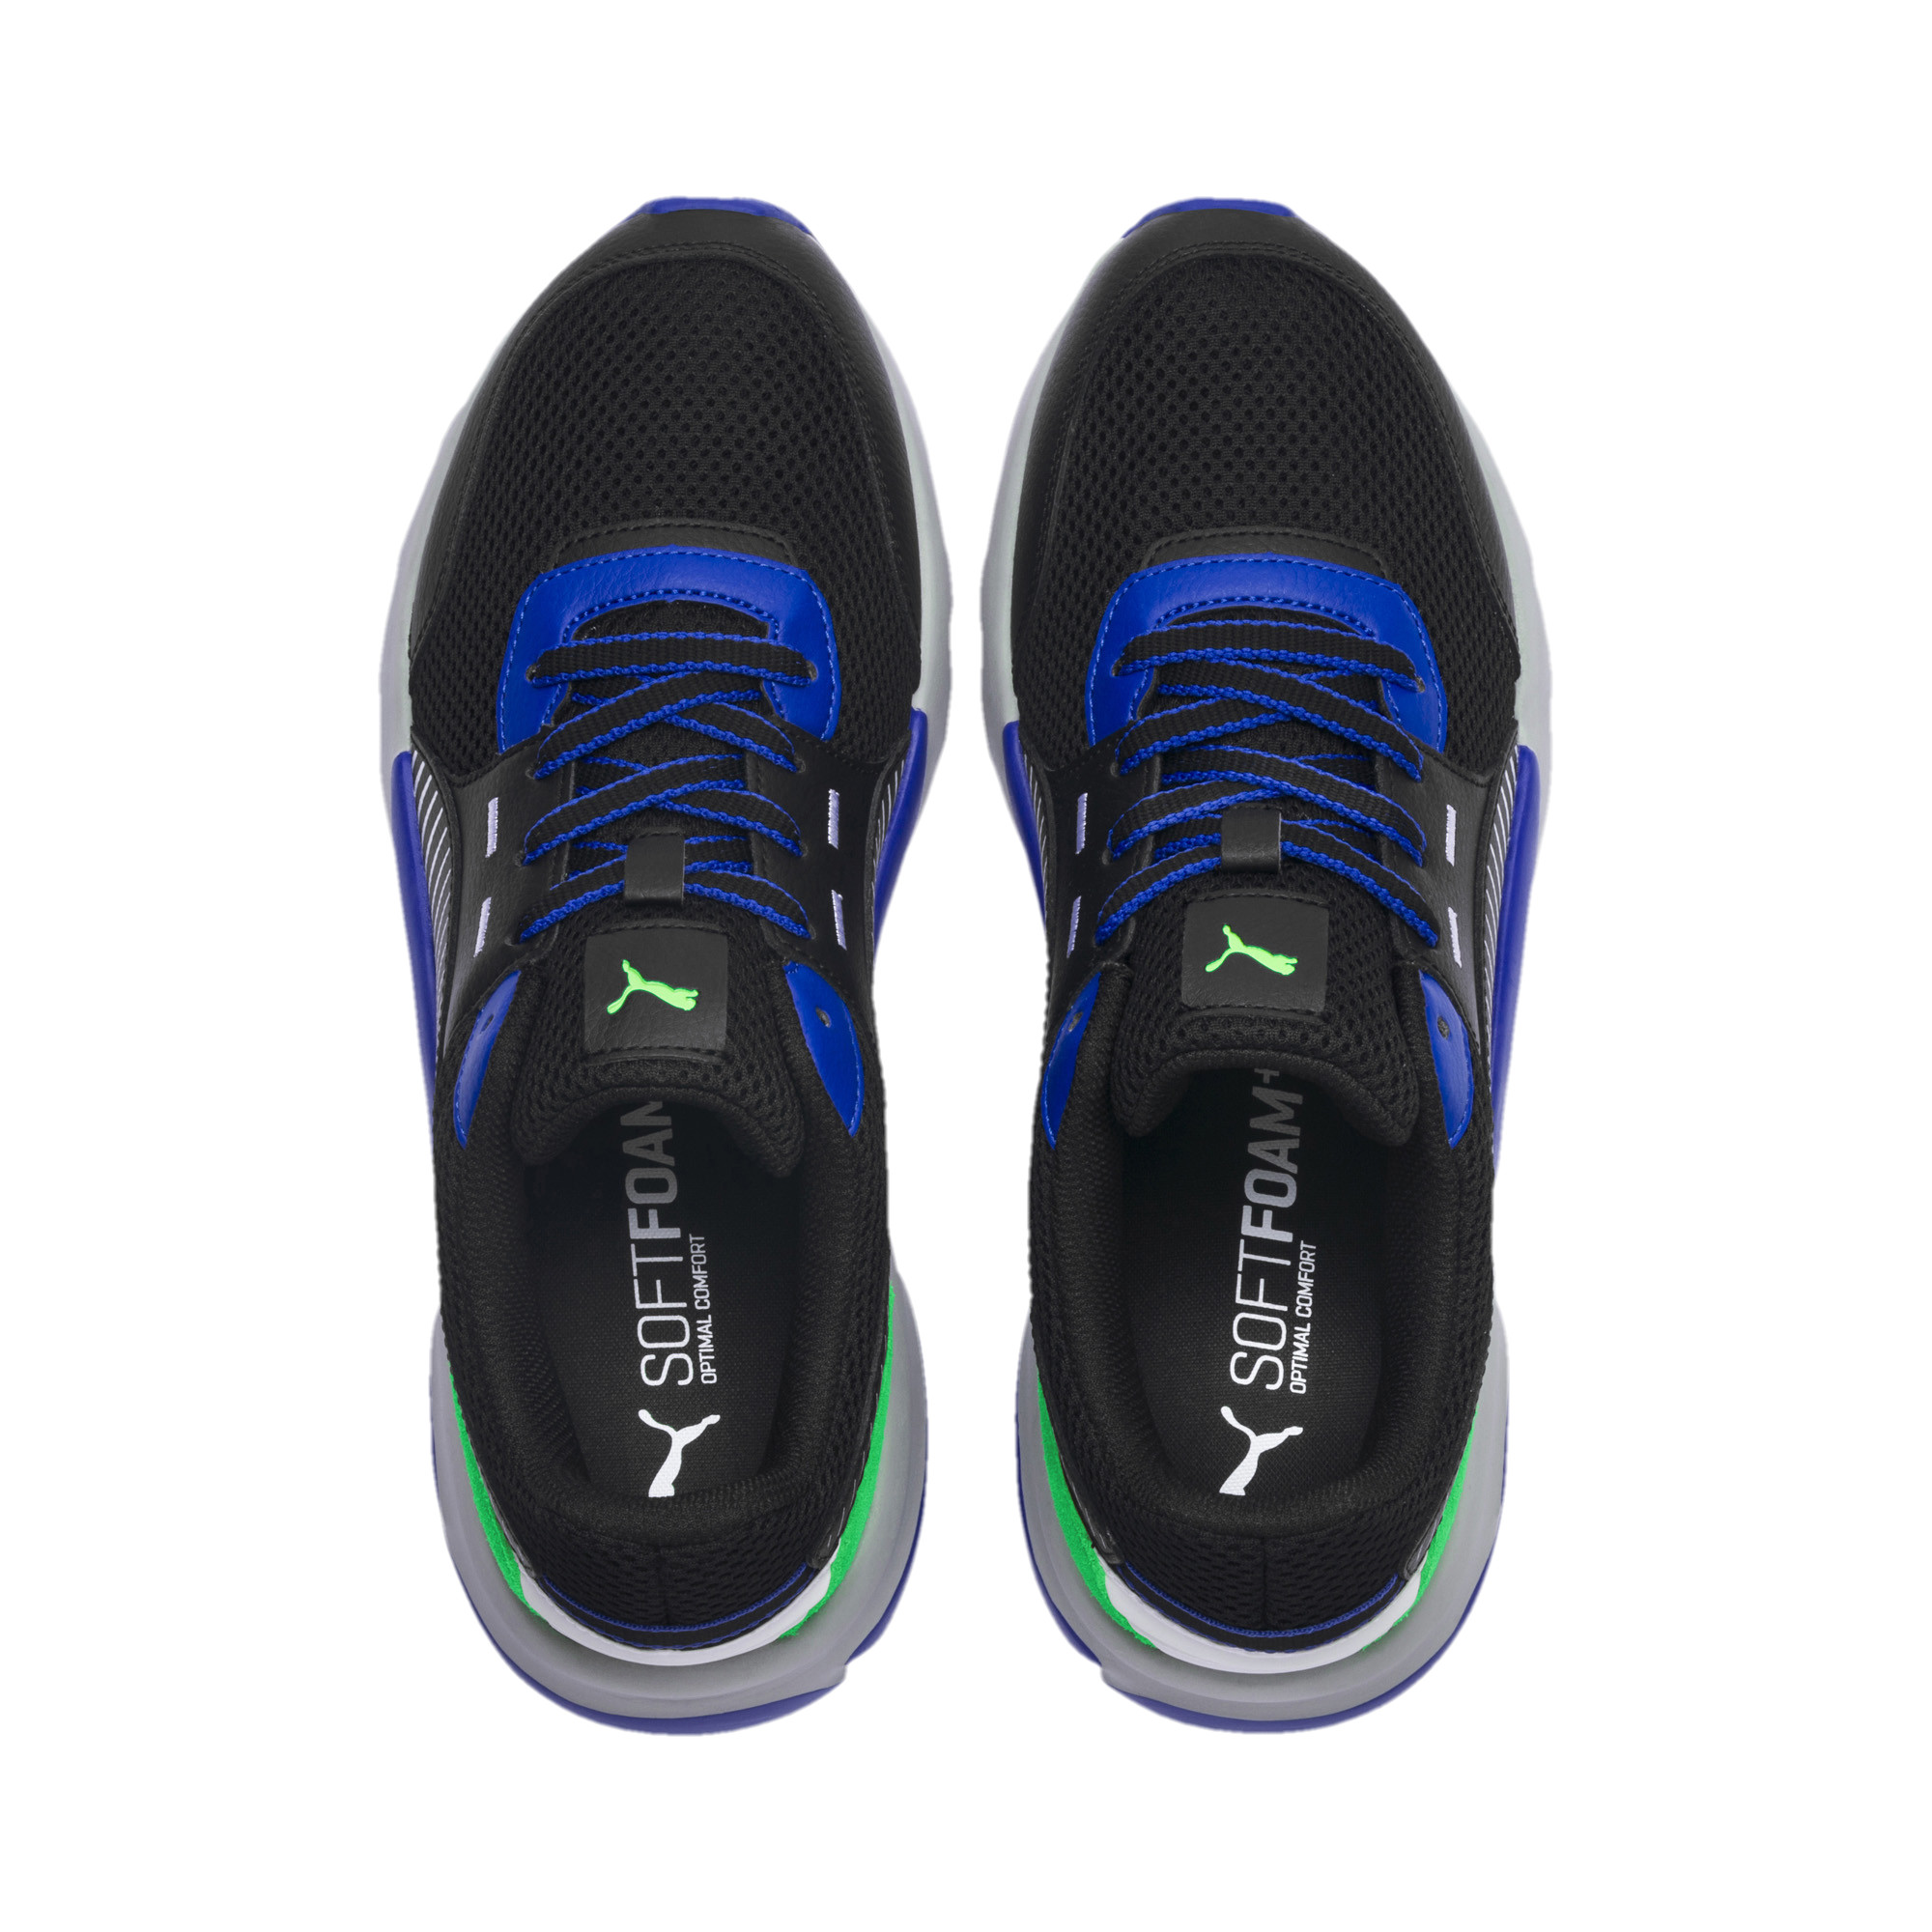 PUMA-Future-Runner-Premium-Men-039-s-Running-Shoes-Men-Shoe-Basics thumbnail 13